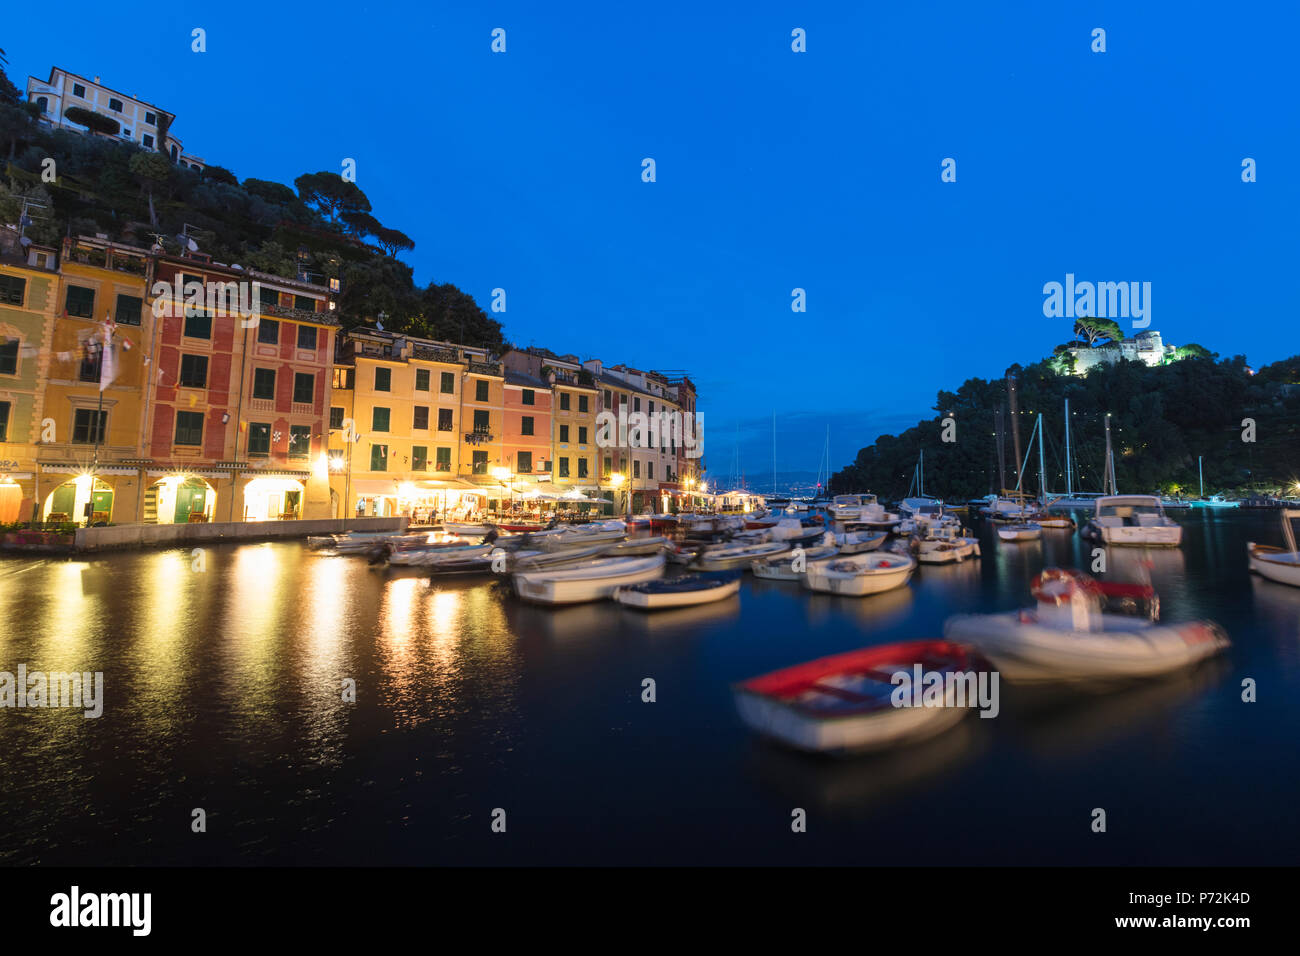 Harbour of Portofino at dusk, province of Genoa, Liguria, Italy, Europe - Stock Image